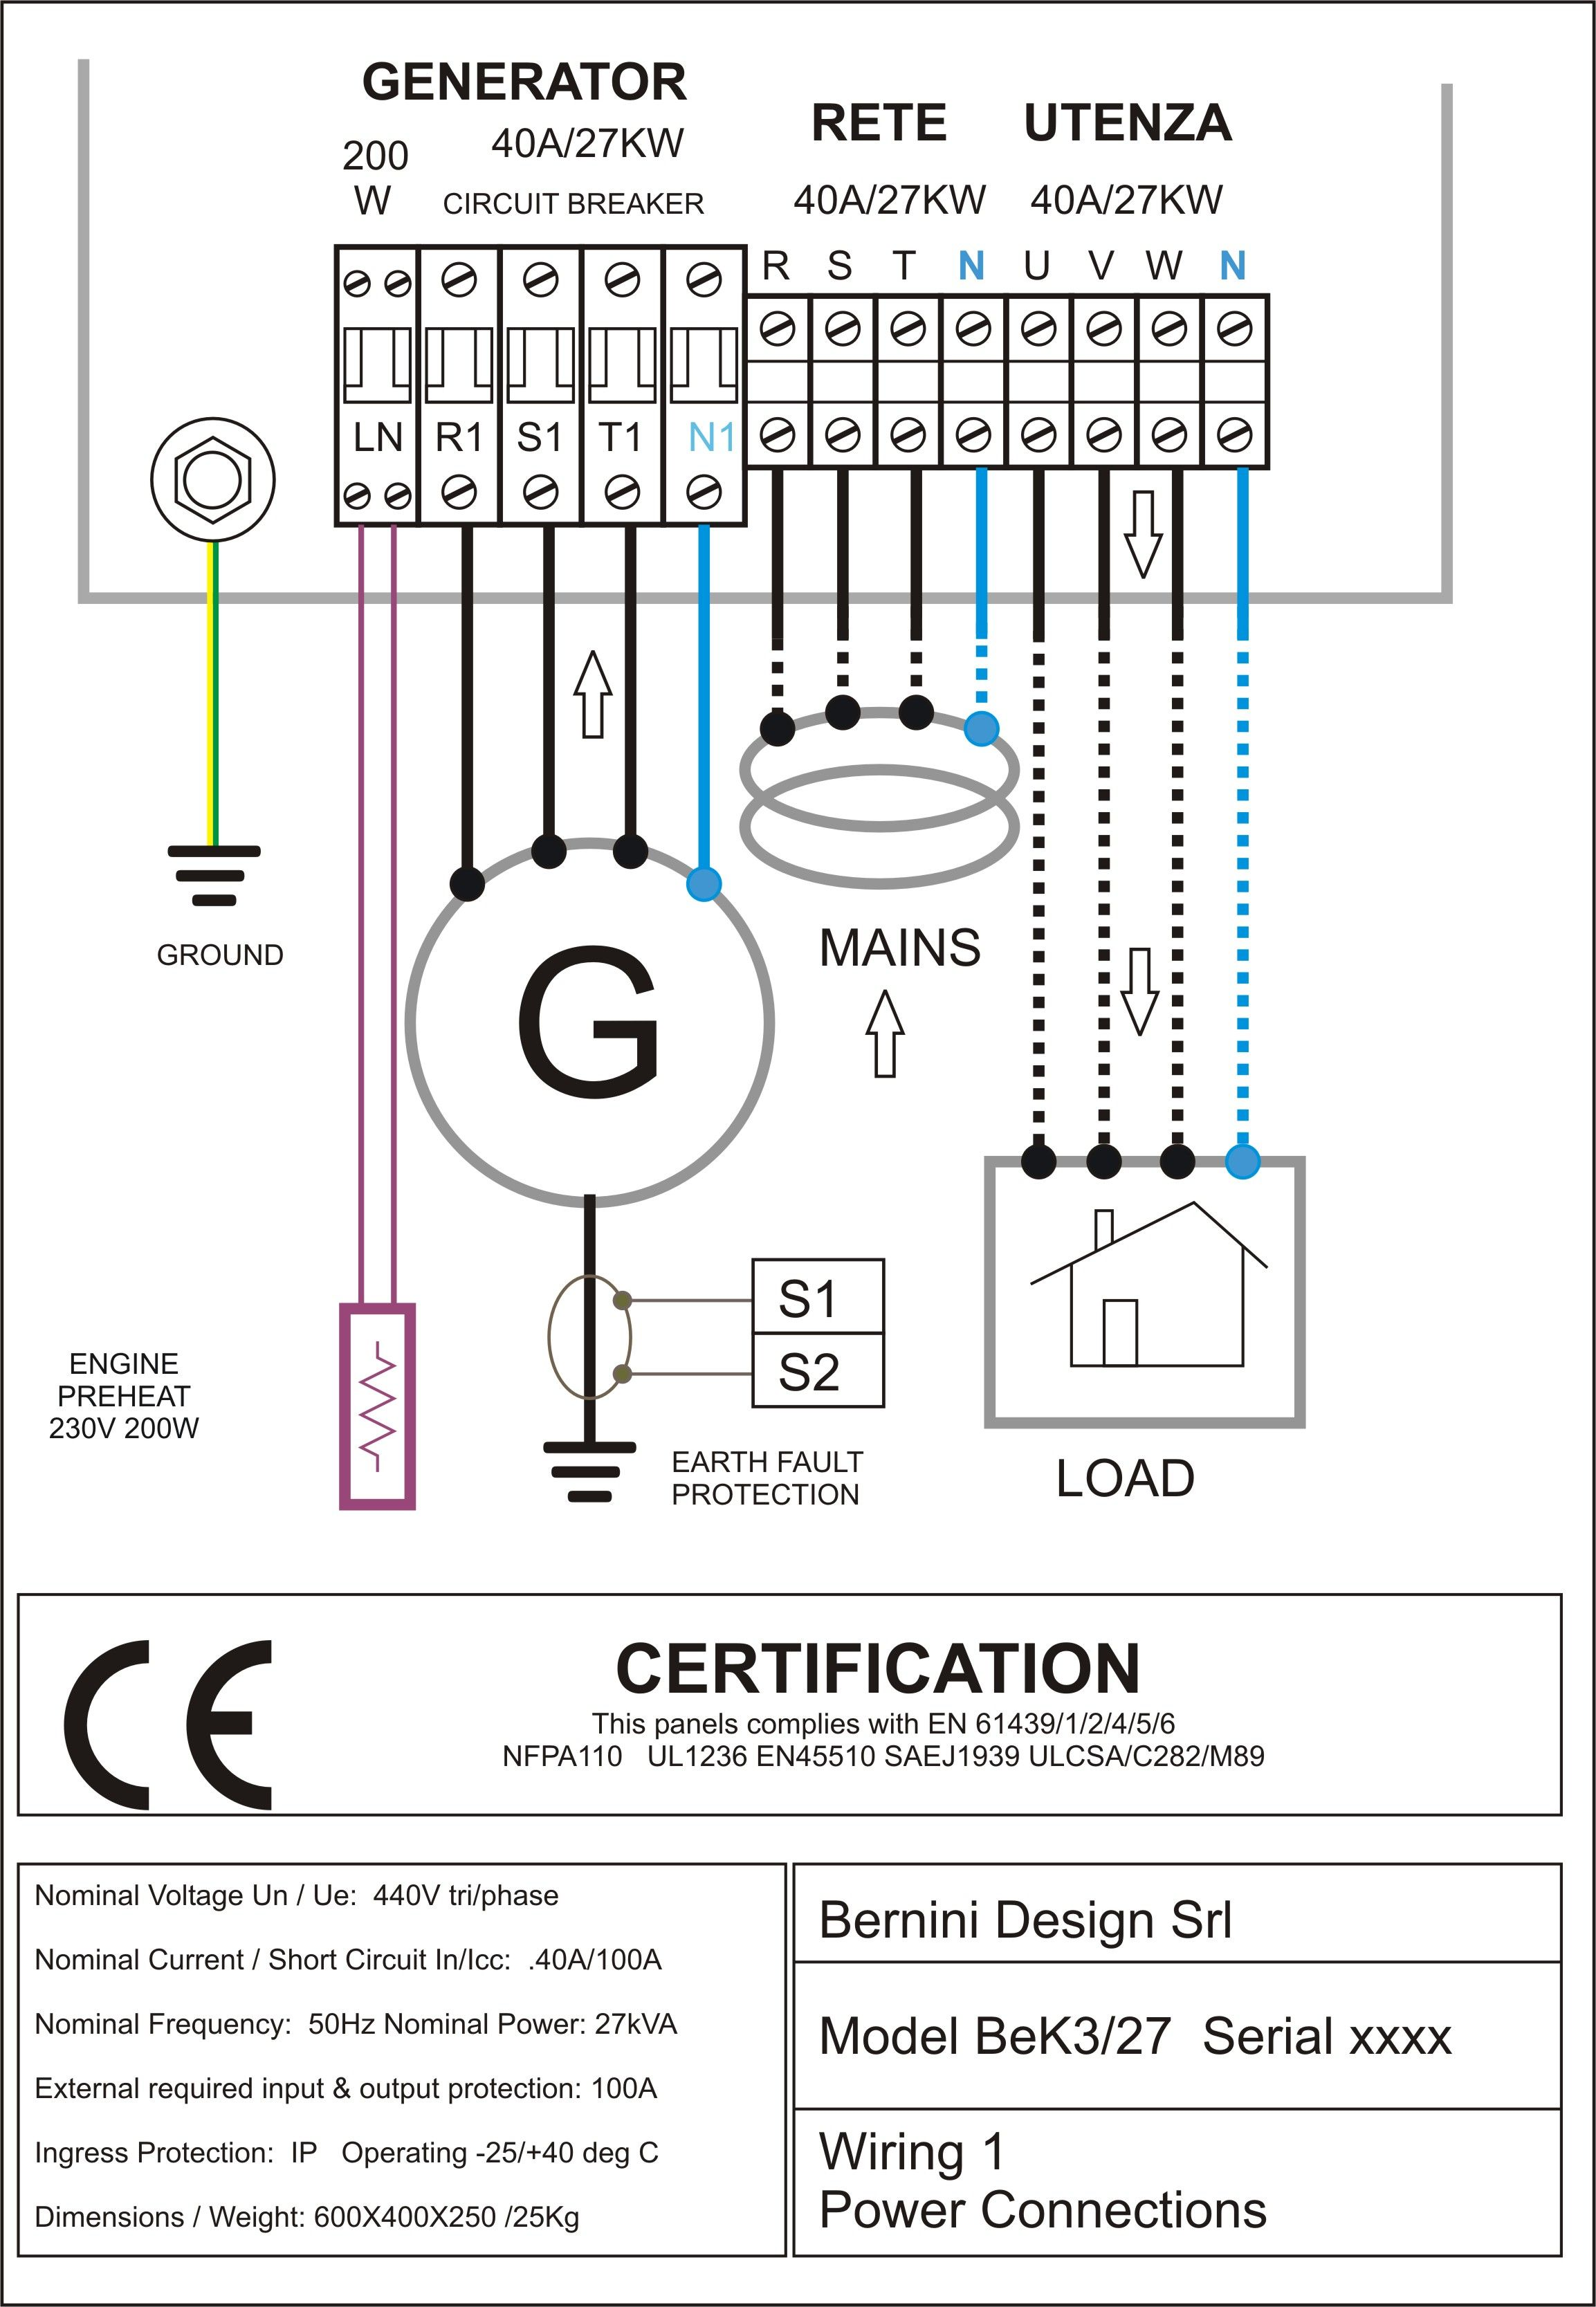 e789bca93f9142d48250ddc66668a81d diesel generator control panel wiring diagram gr pinterest controller wire diagram for 3246e2 lift at soozxer.org